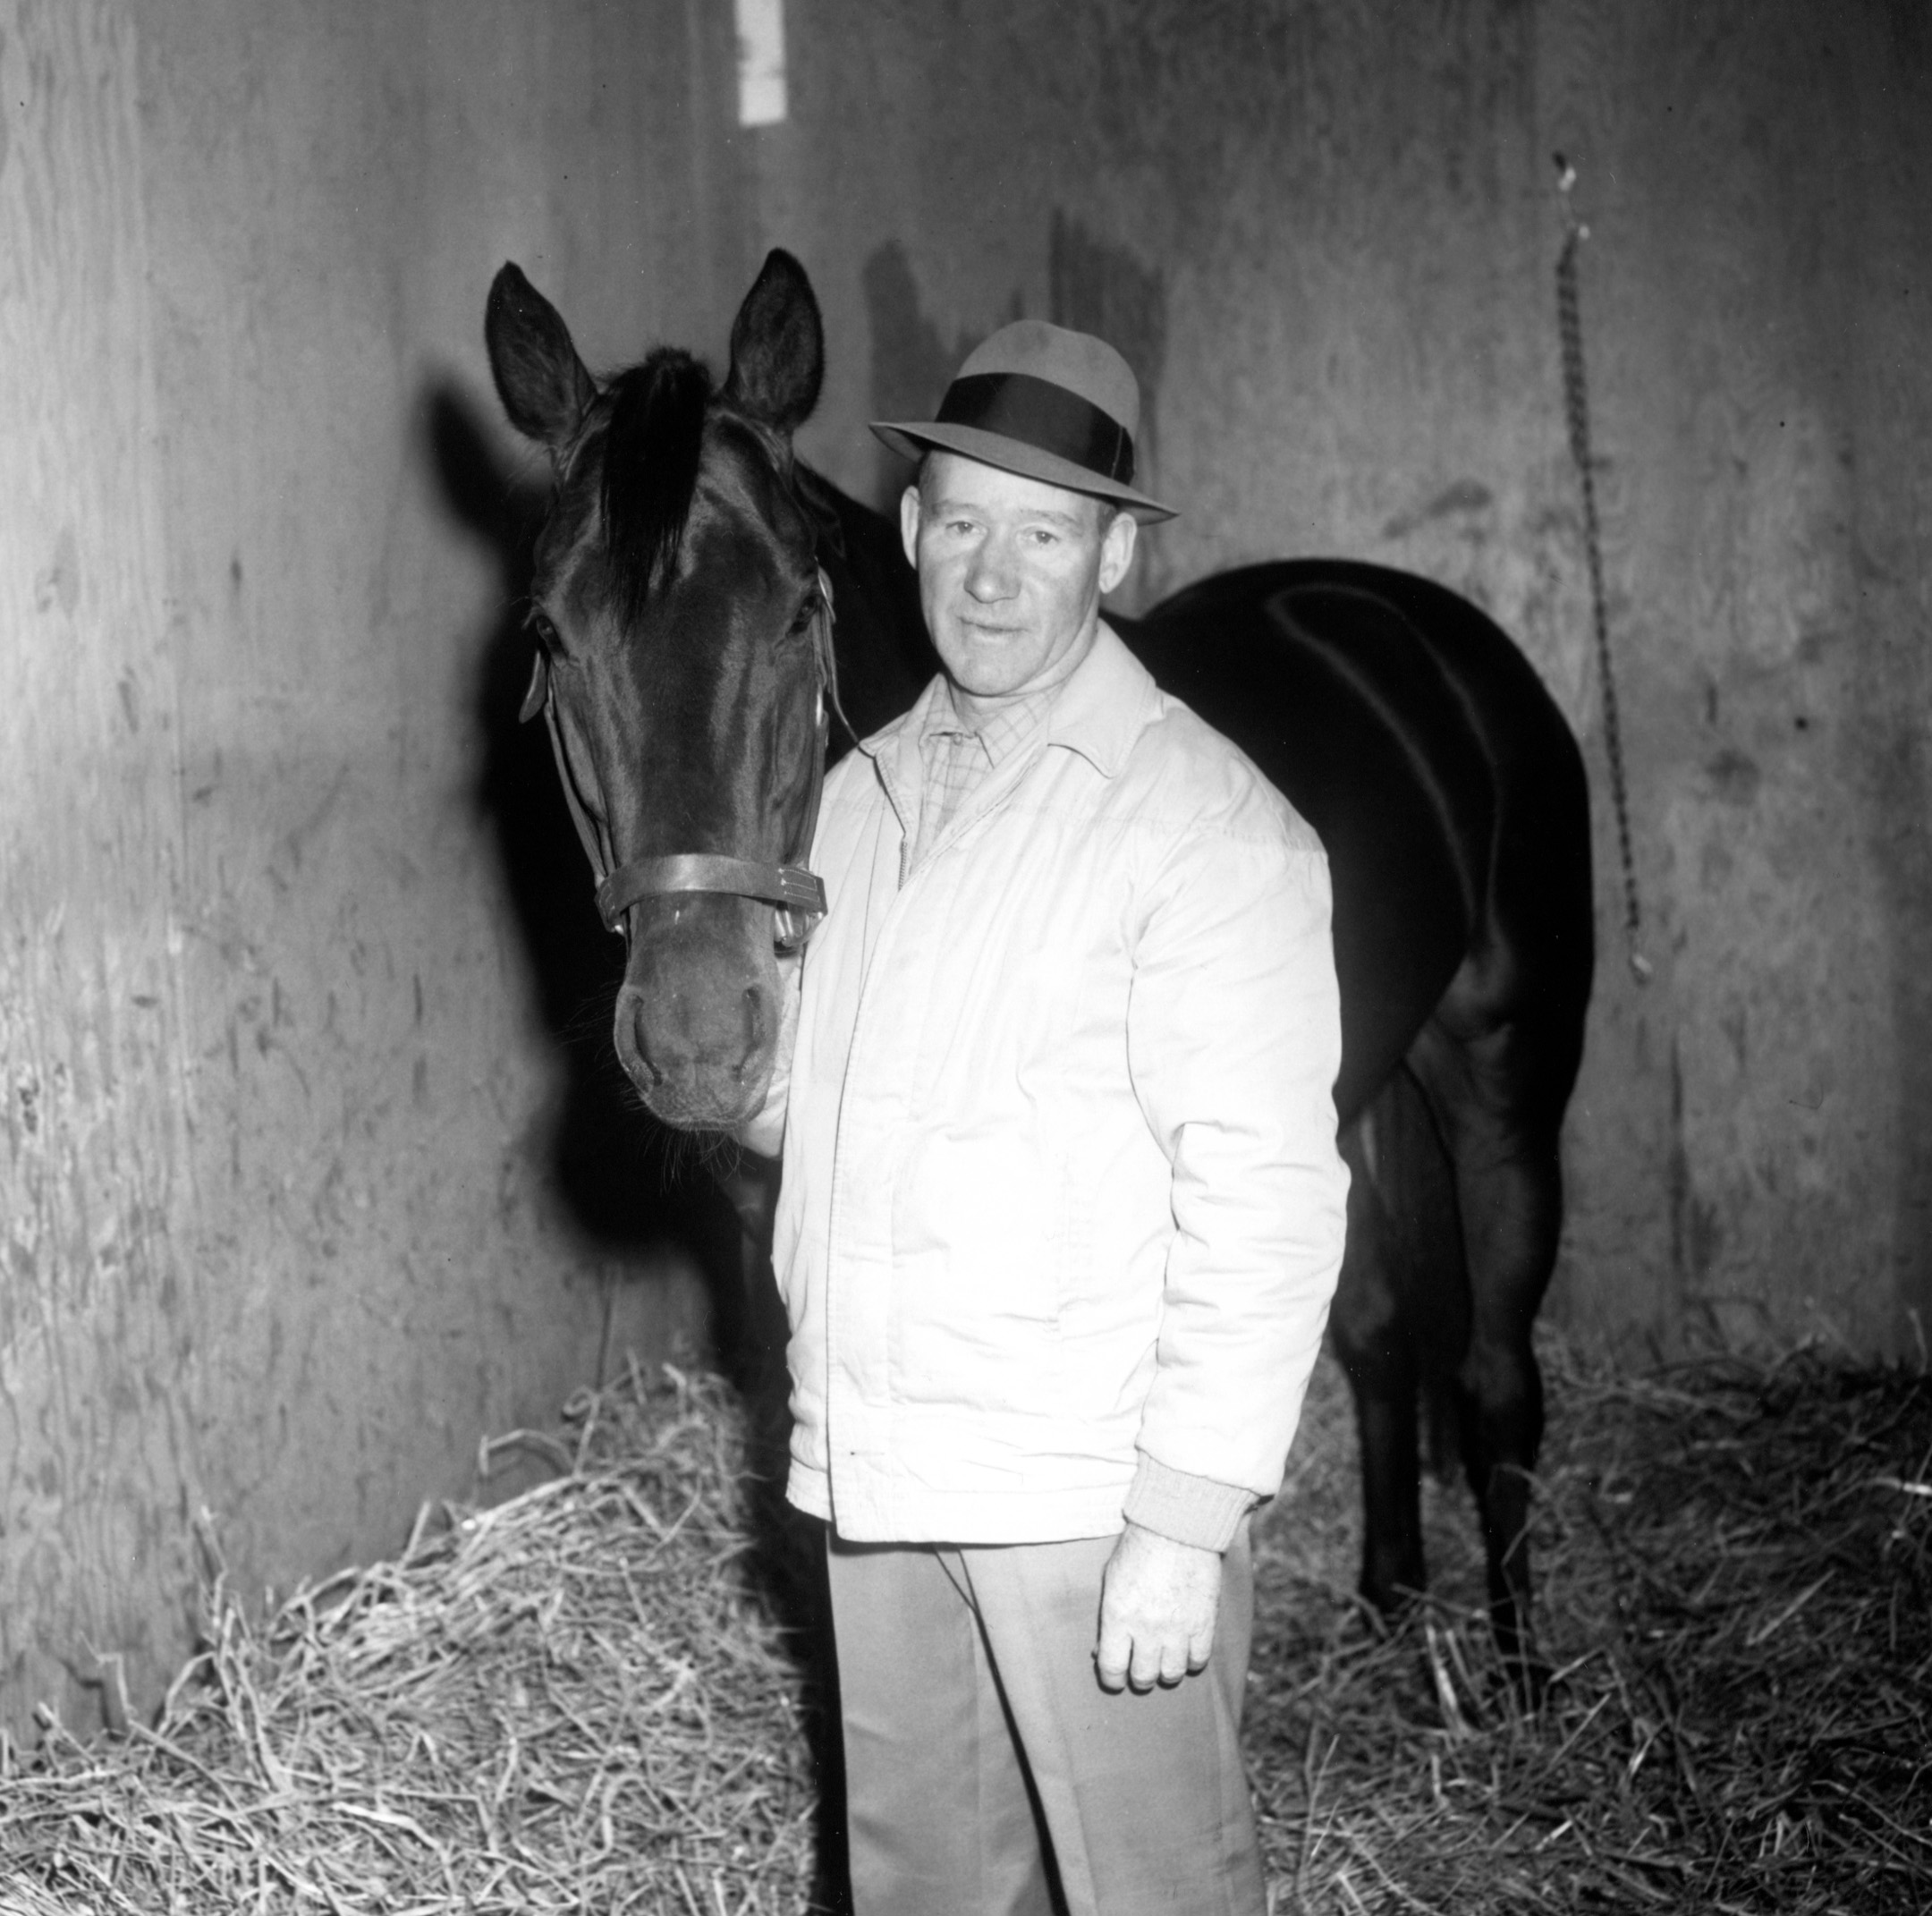 Burley Park with Garwol at Aqueduct, April 1961 (Keeneland Library Morgan Collection/Museum Collection)